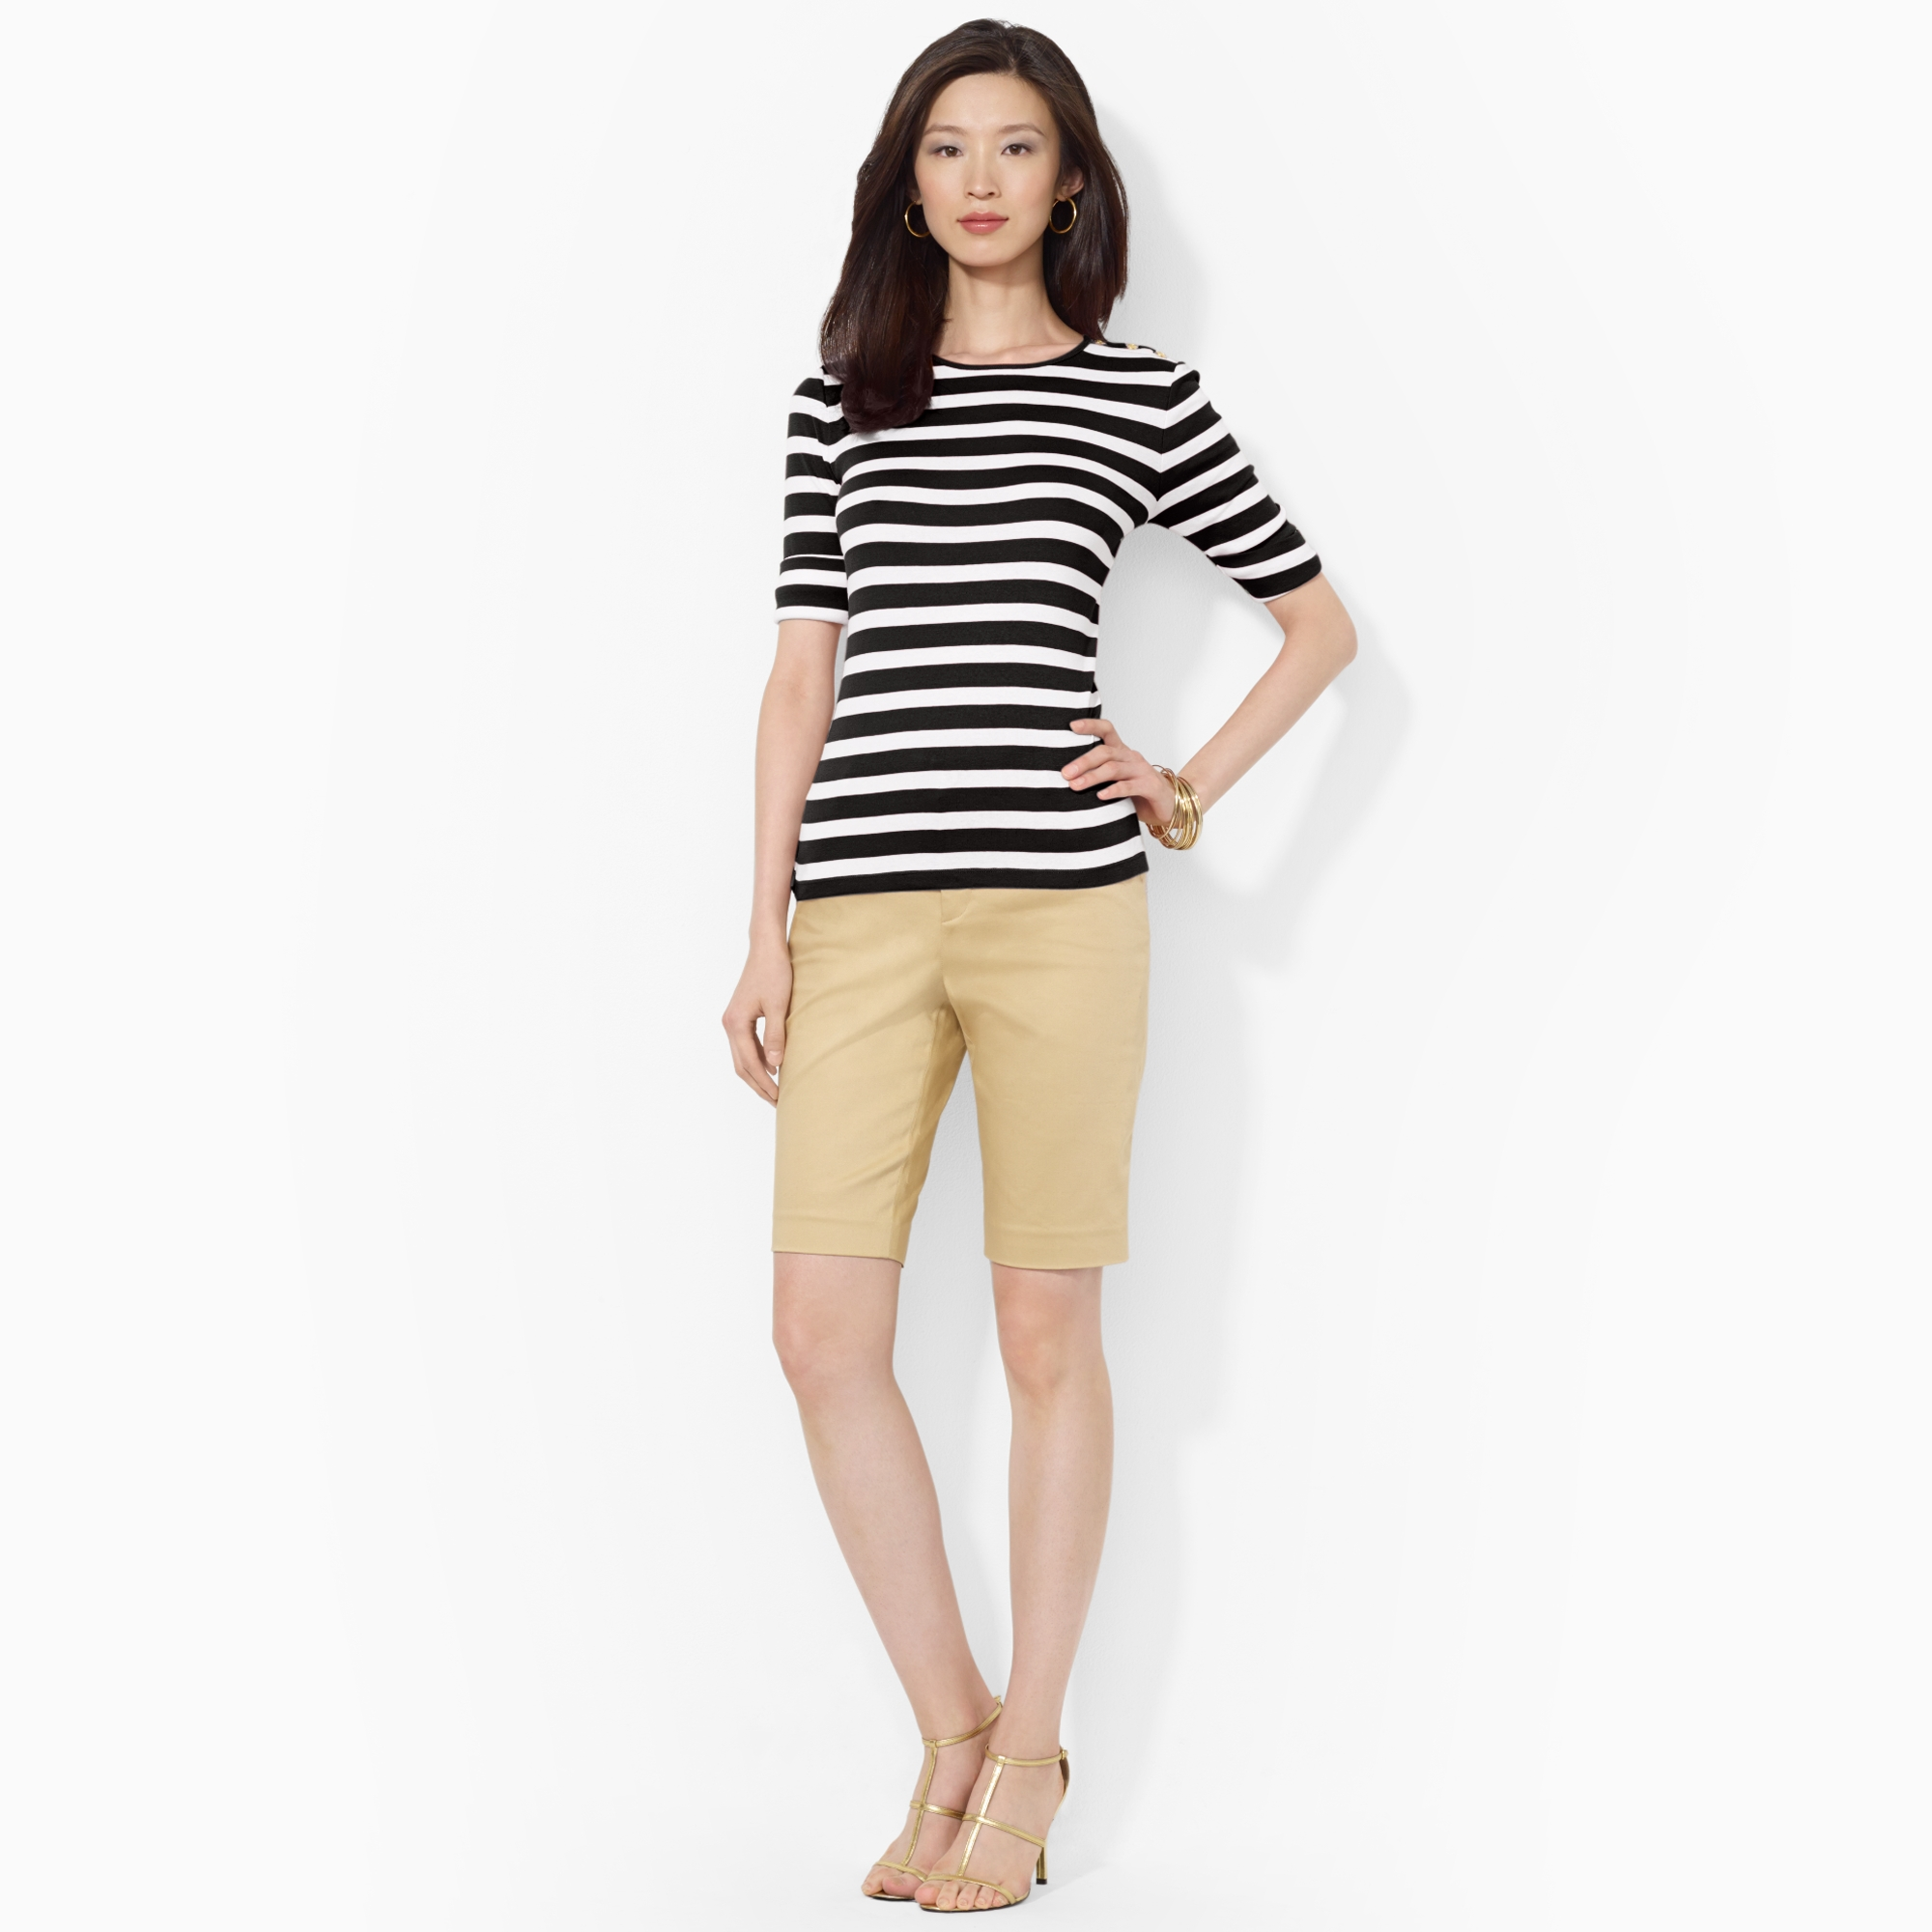 image of ralph lauren striped shirt and bermuda shorts